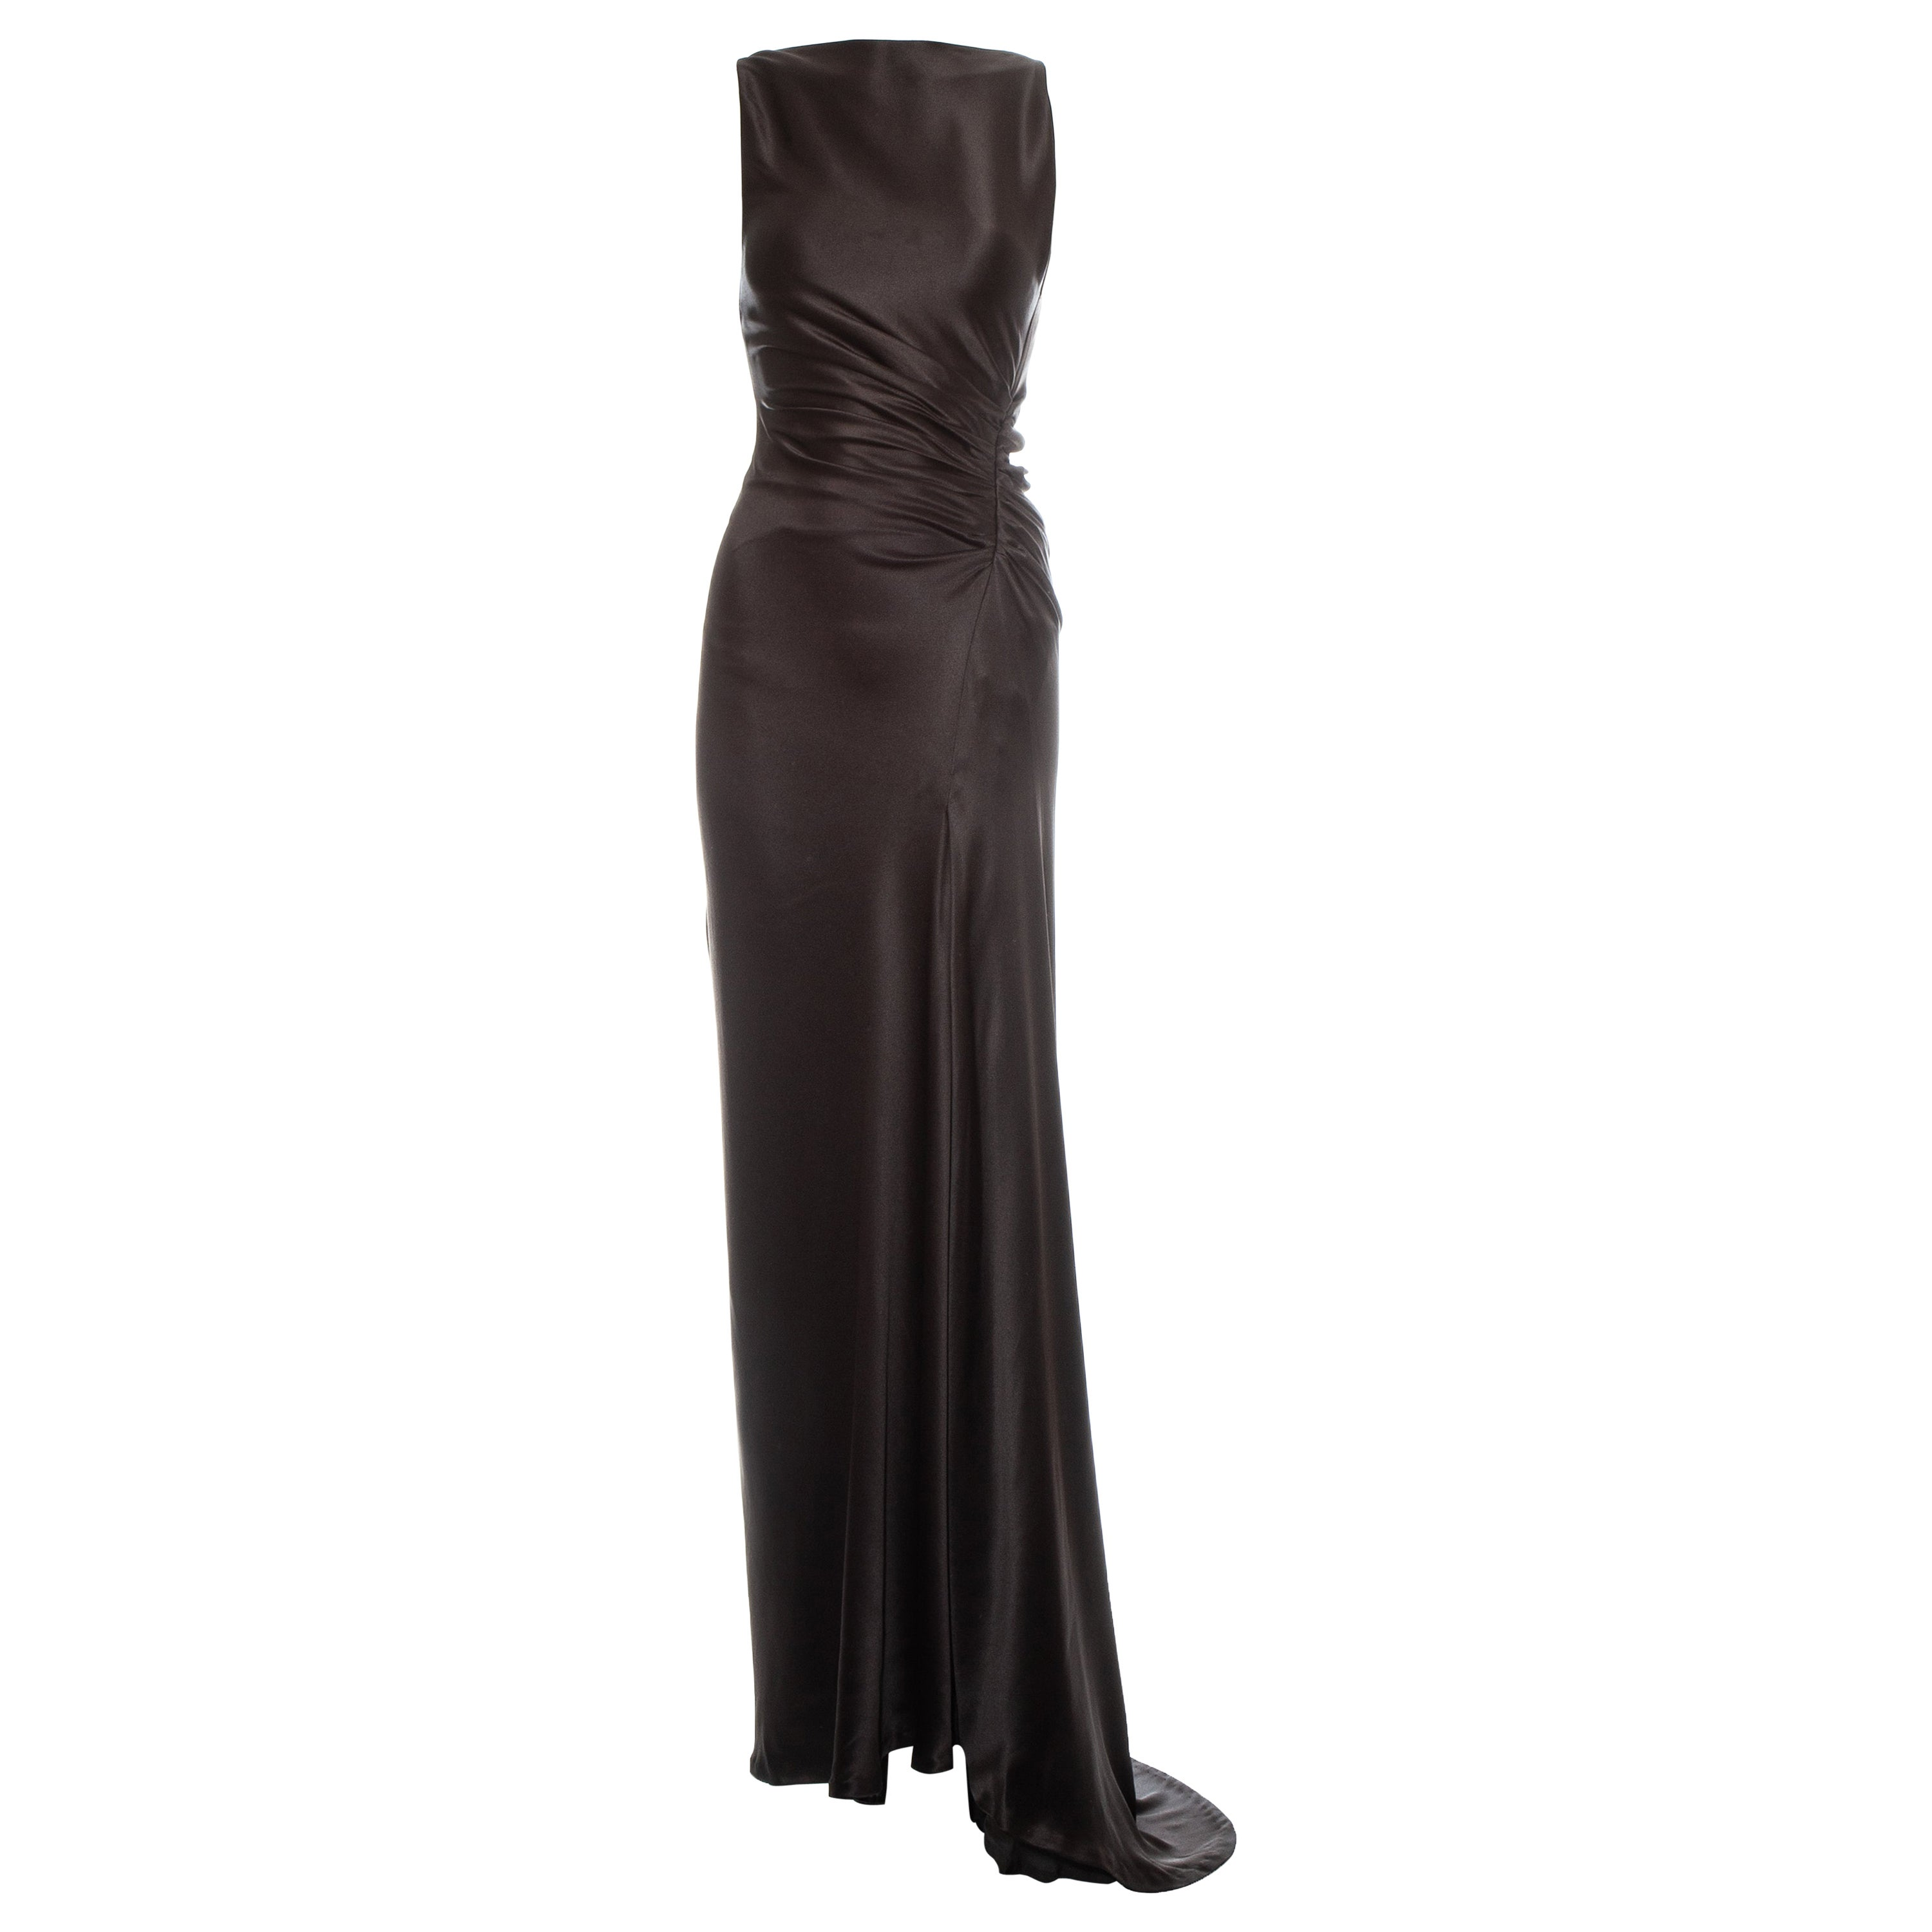 Gucci by Tom Ford brown ruched silk evening dress, fw 1999